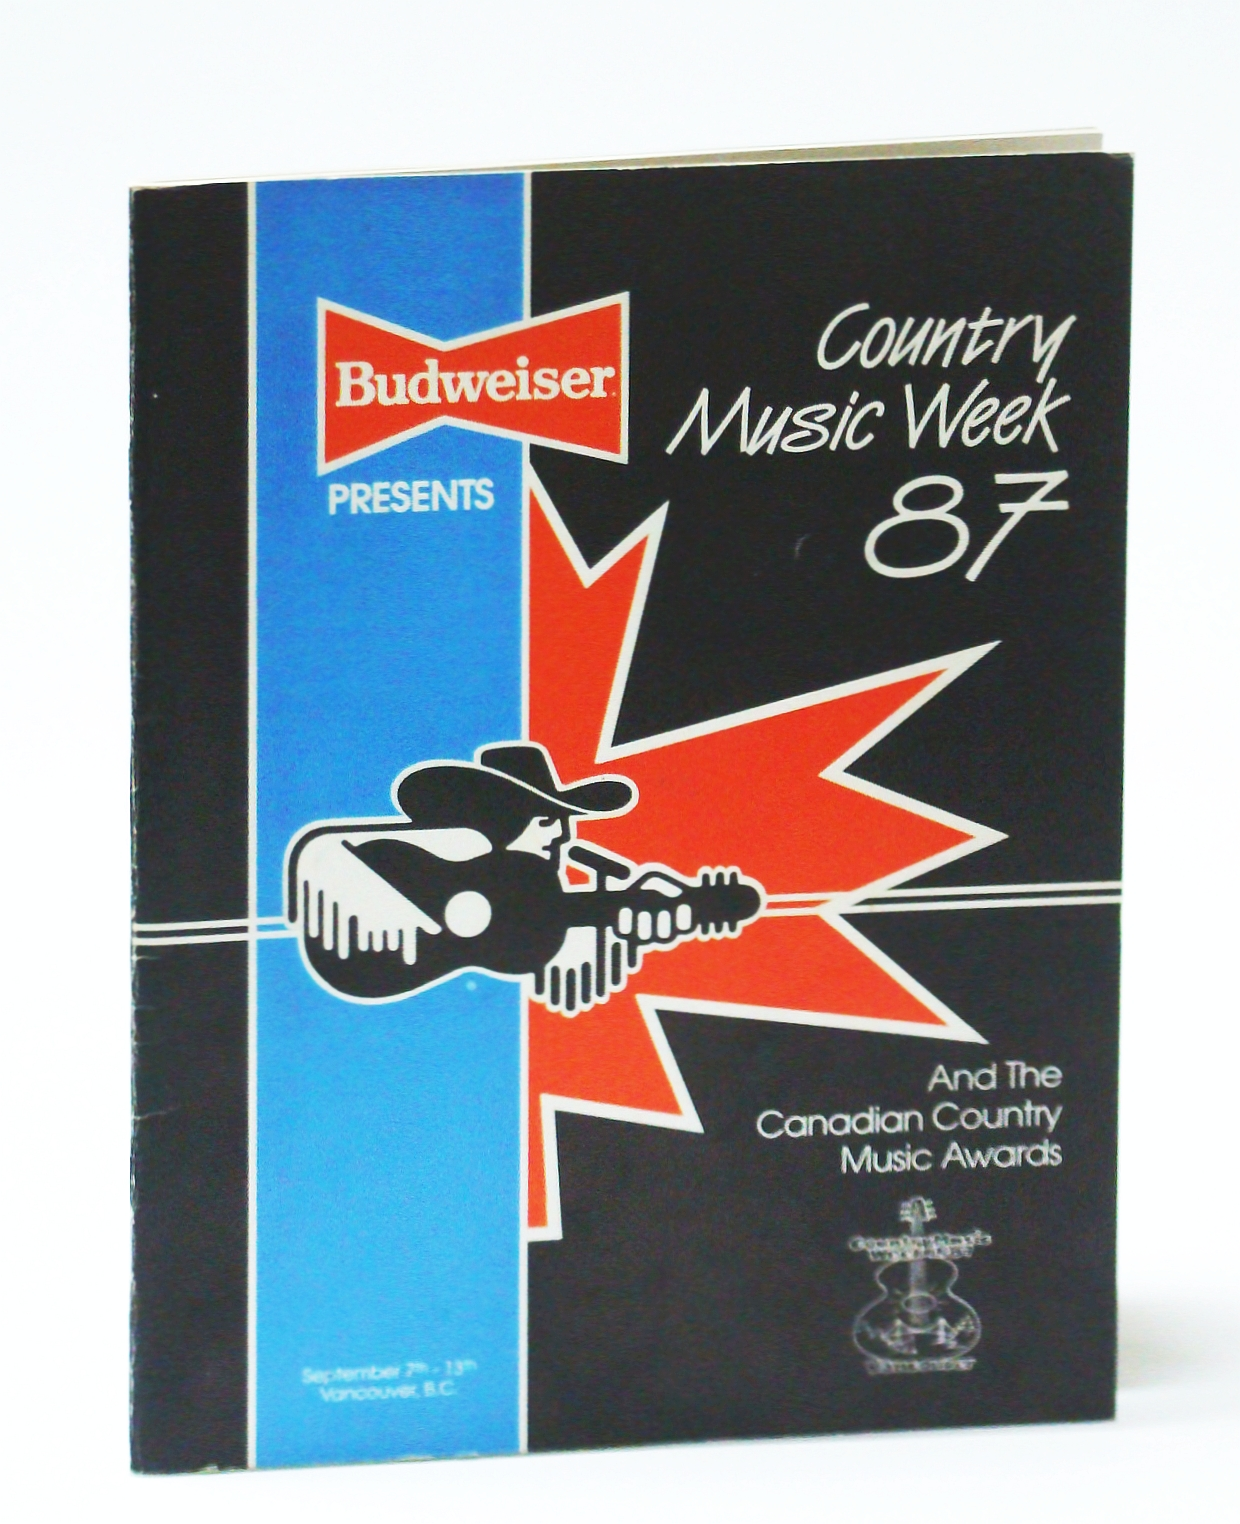 Image for Country Music Wee 87 (1987) and the Canadian Country Music Awards, September 7th-13th, Vancouver, B.C.